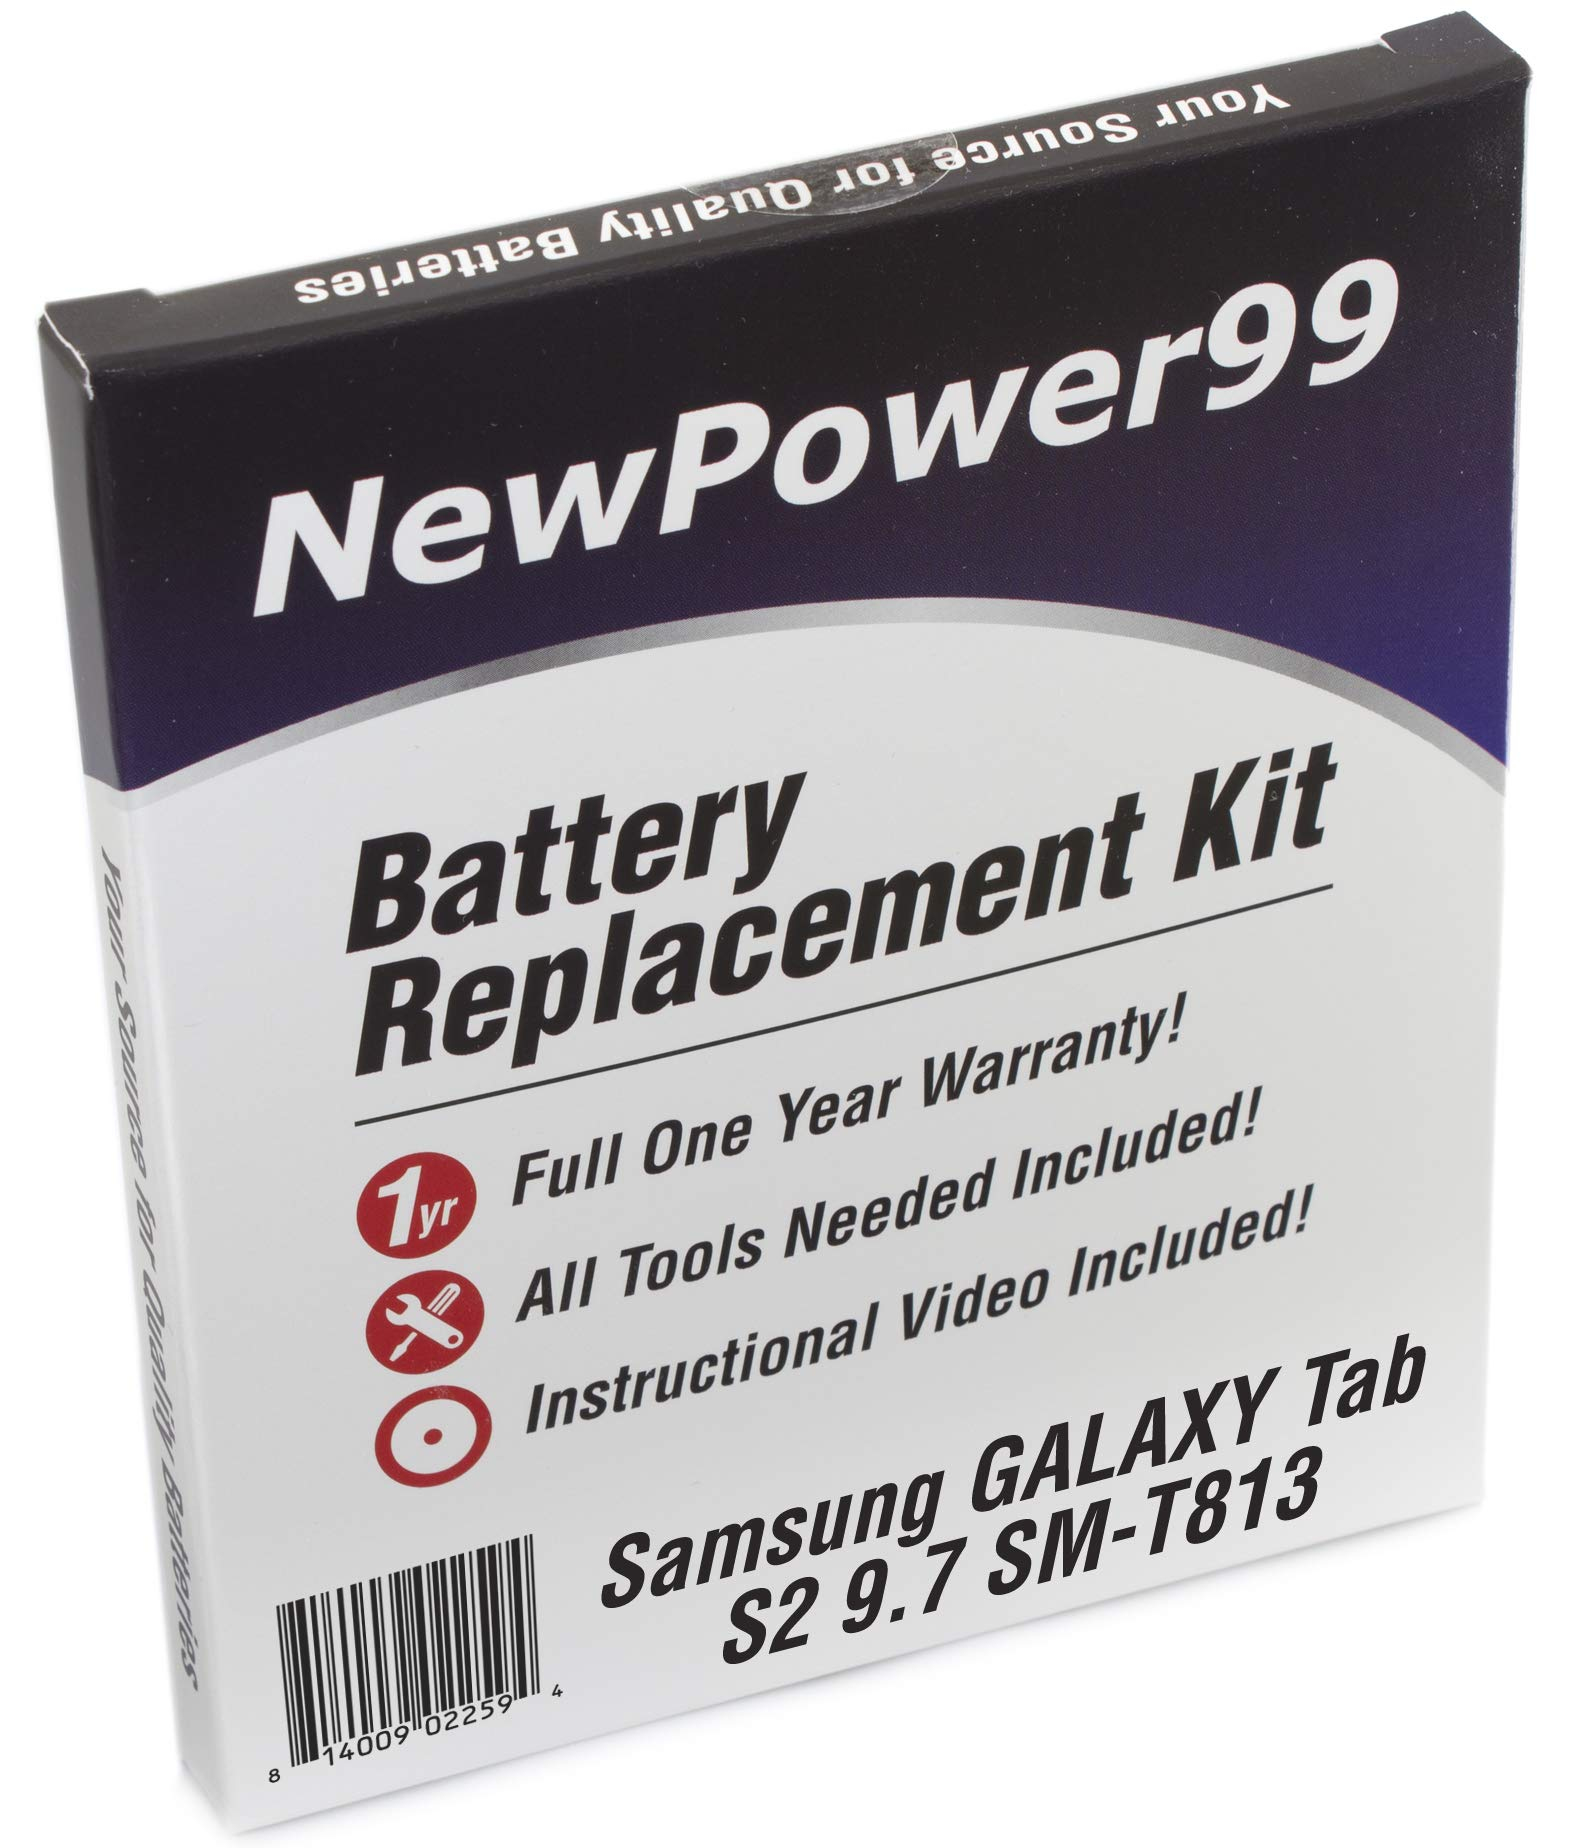 ''				NewPower99 Battery Replacement Kit with Battery, Video Instructions and Tools for Samsung Galaxy Tab S2 9.7 SM-T813''